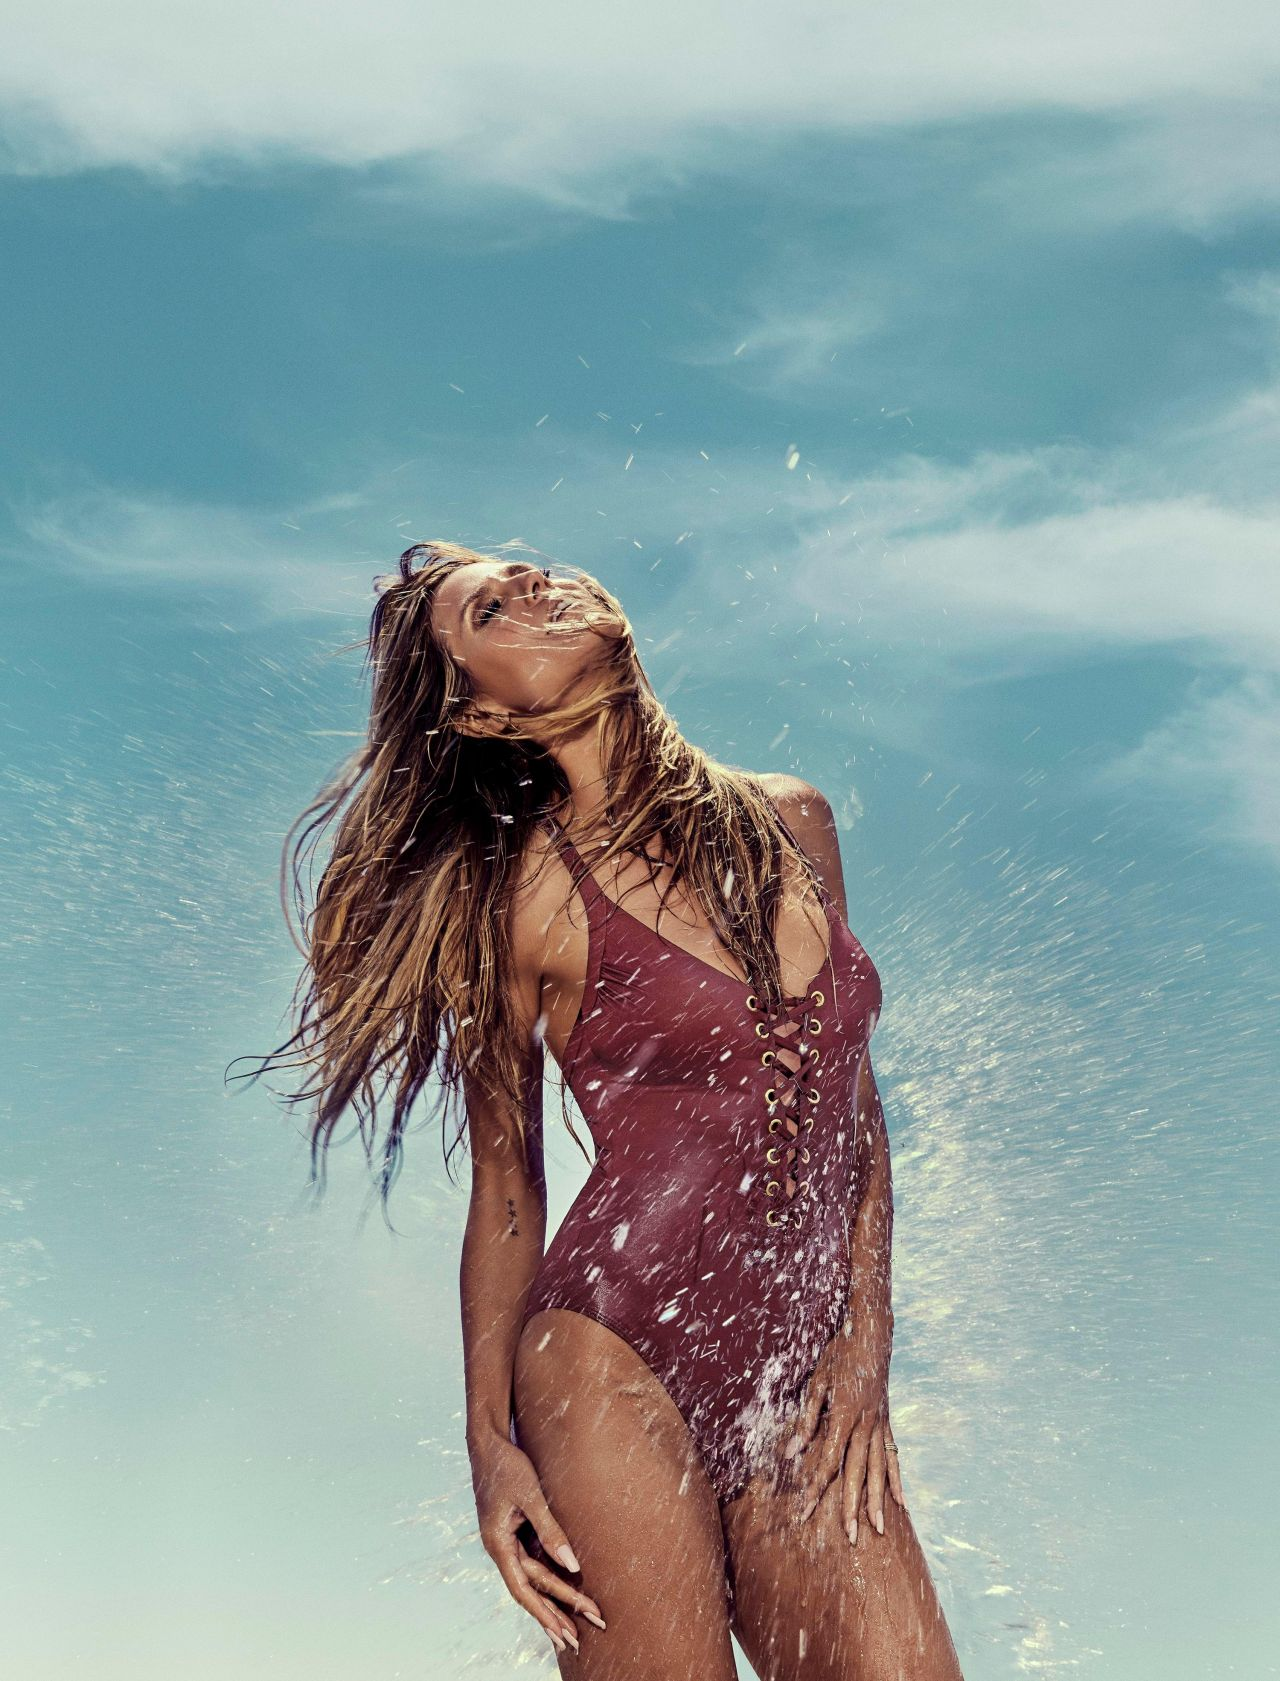 image Heidi klum seethrough photoshoot at the beach